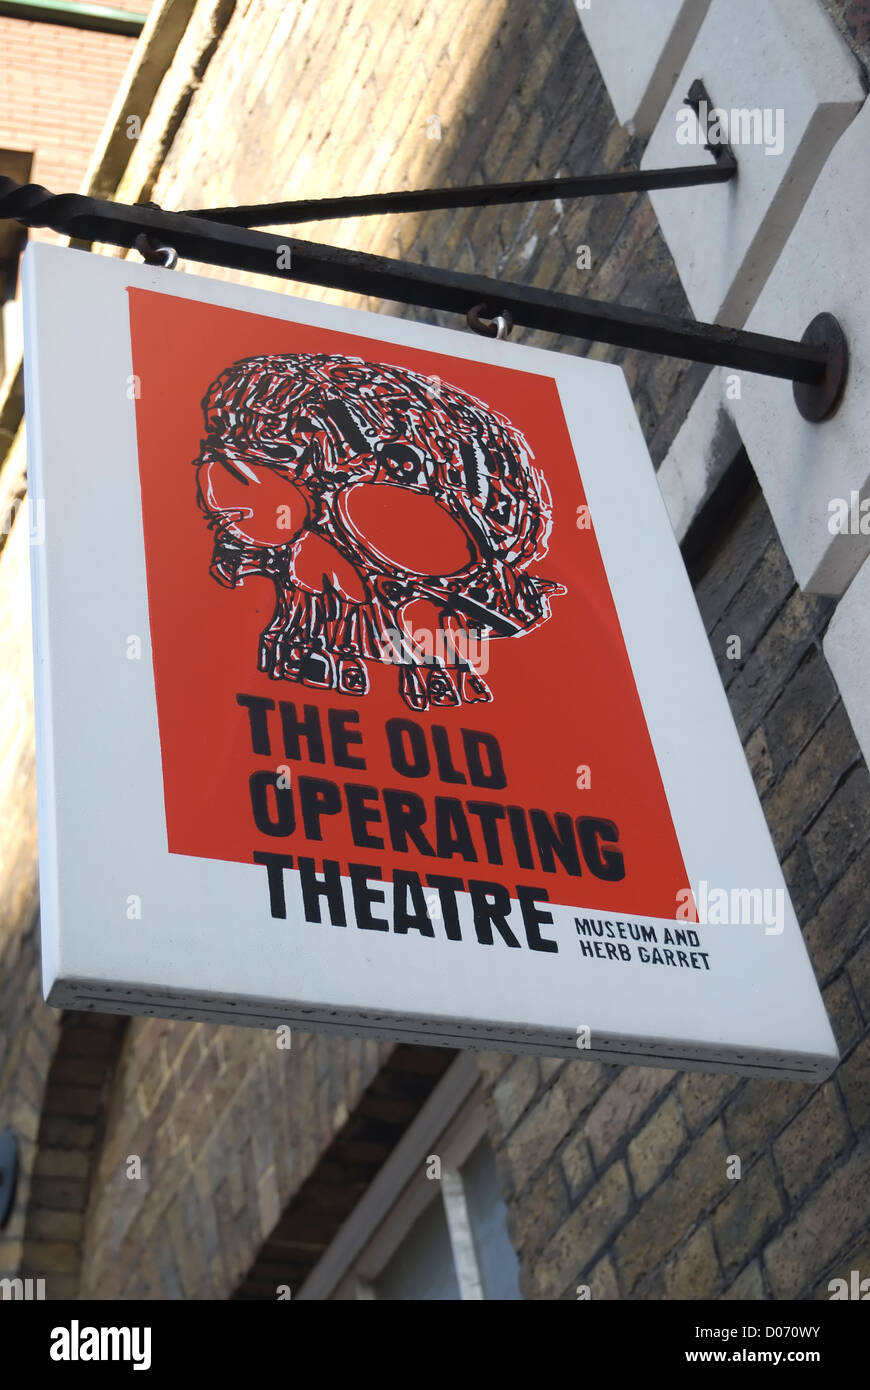 hanging sign marking the old operating theatre and herb garret museum, southwark, london, england - Stock Image